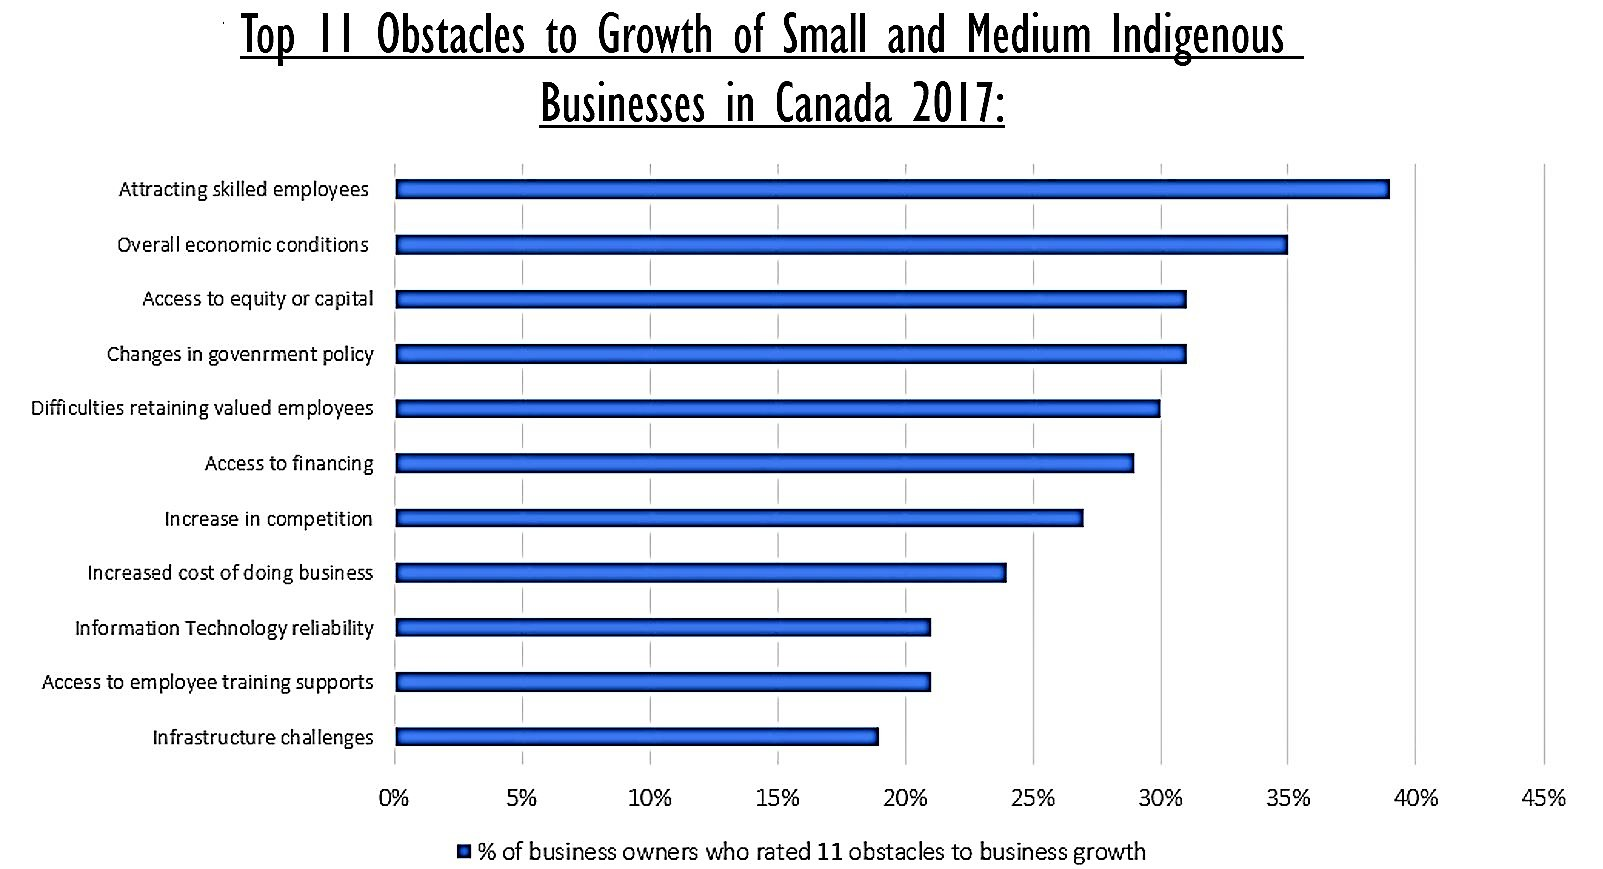 Top 11 Obstacles to Growth of Small and Medium Indigenous Businesses in Canada 2017: 1) attracting skilled employees, 2) overall economic conditions, 3) access to equity or capital, 4) changes in government policy, 5) difficulties retaining valued employees, 6) access to financing, 7) increase in competition, 8) increased costs of doing business, 9) IT reliability, 10) access to employee training supports, 11) infrastructure challenges.